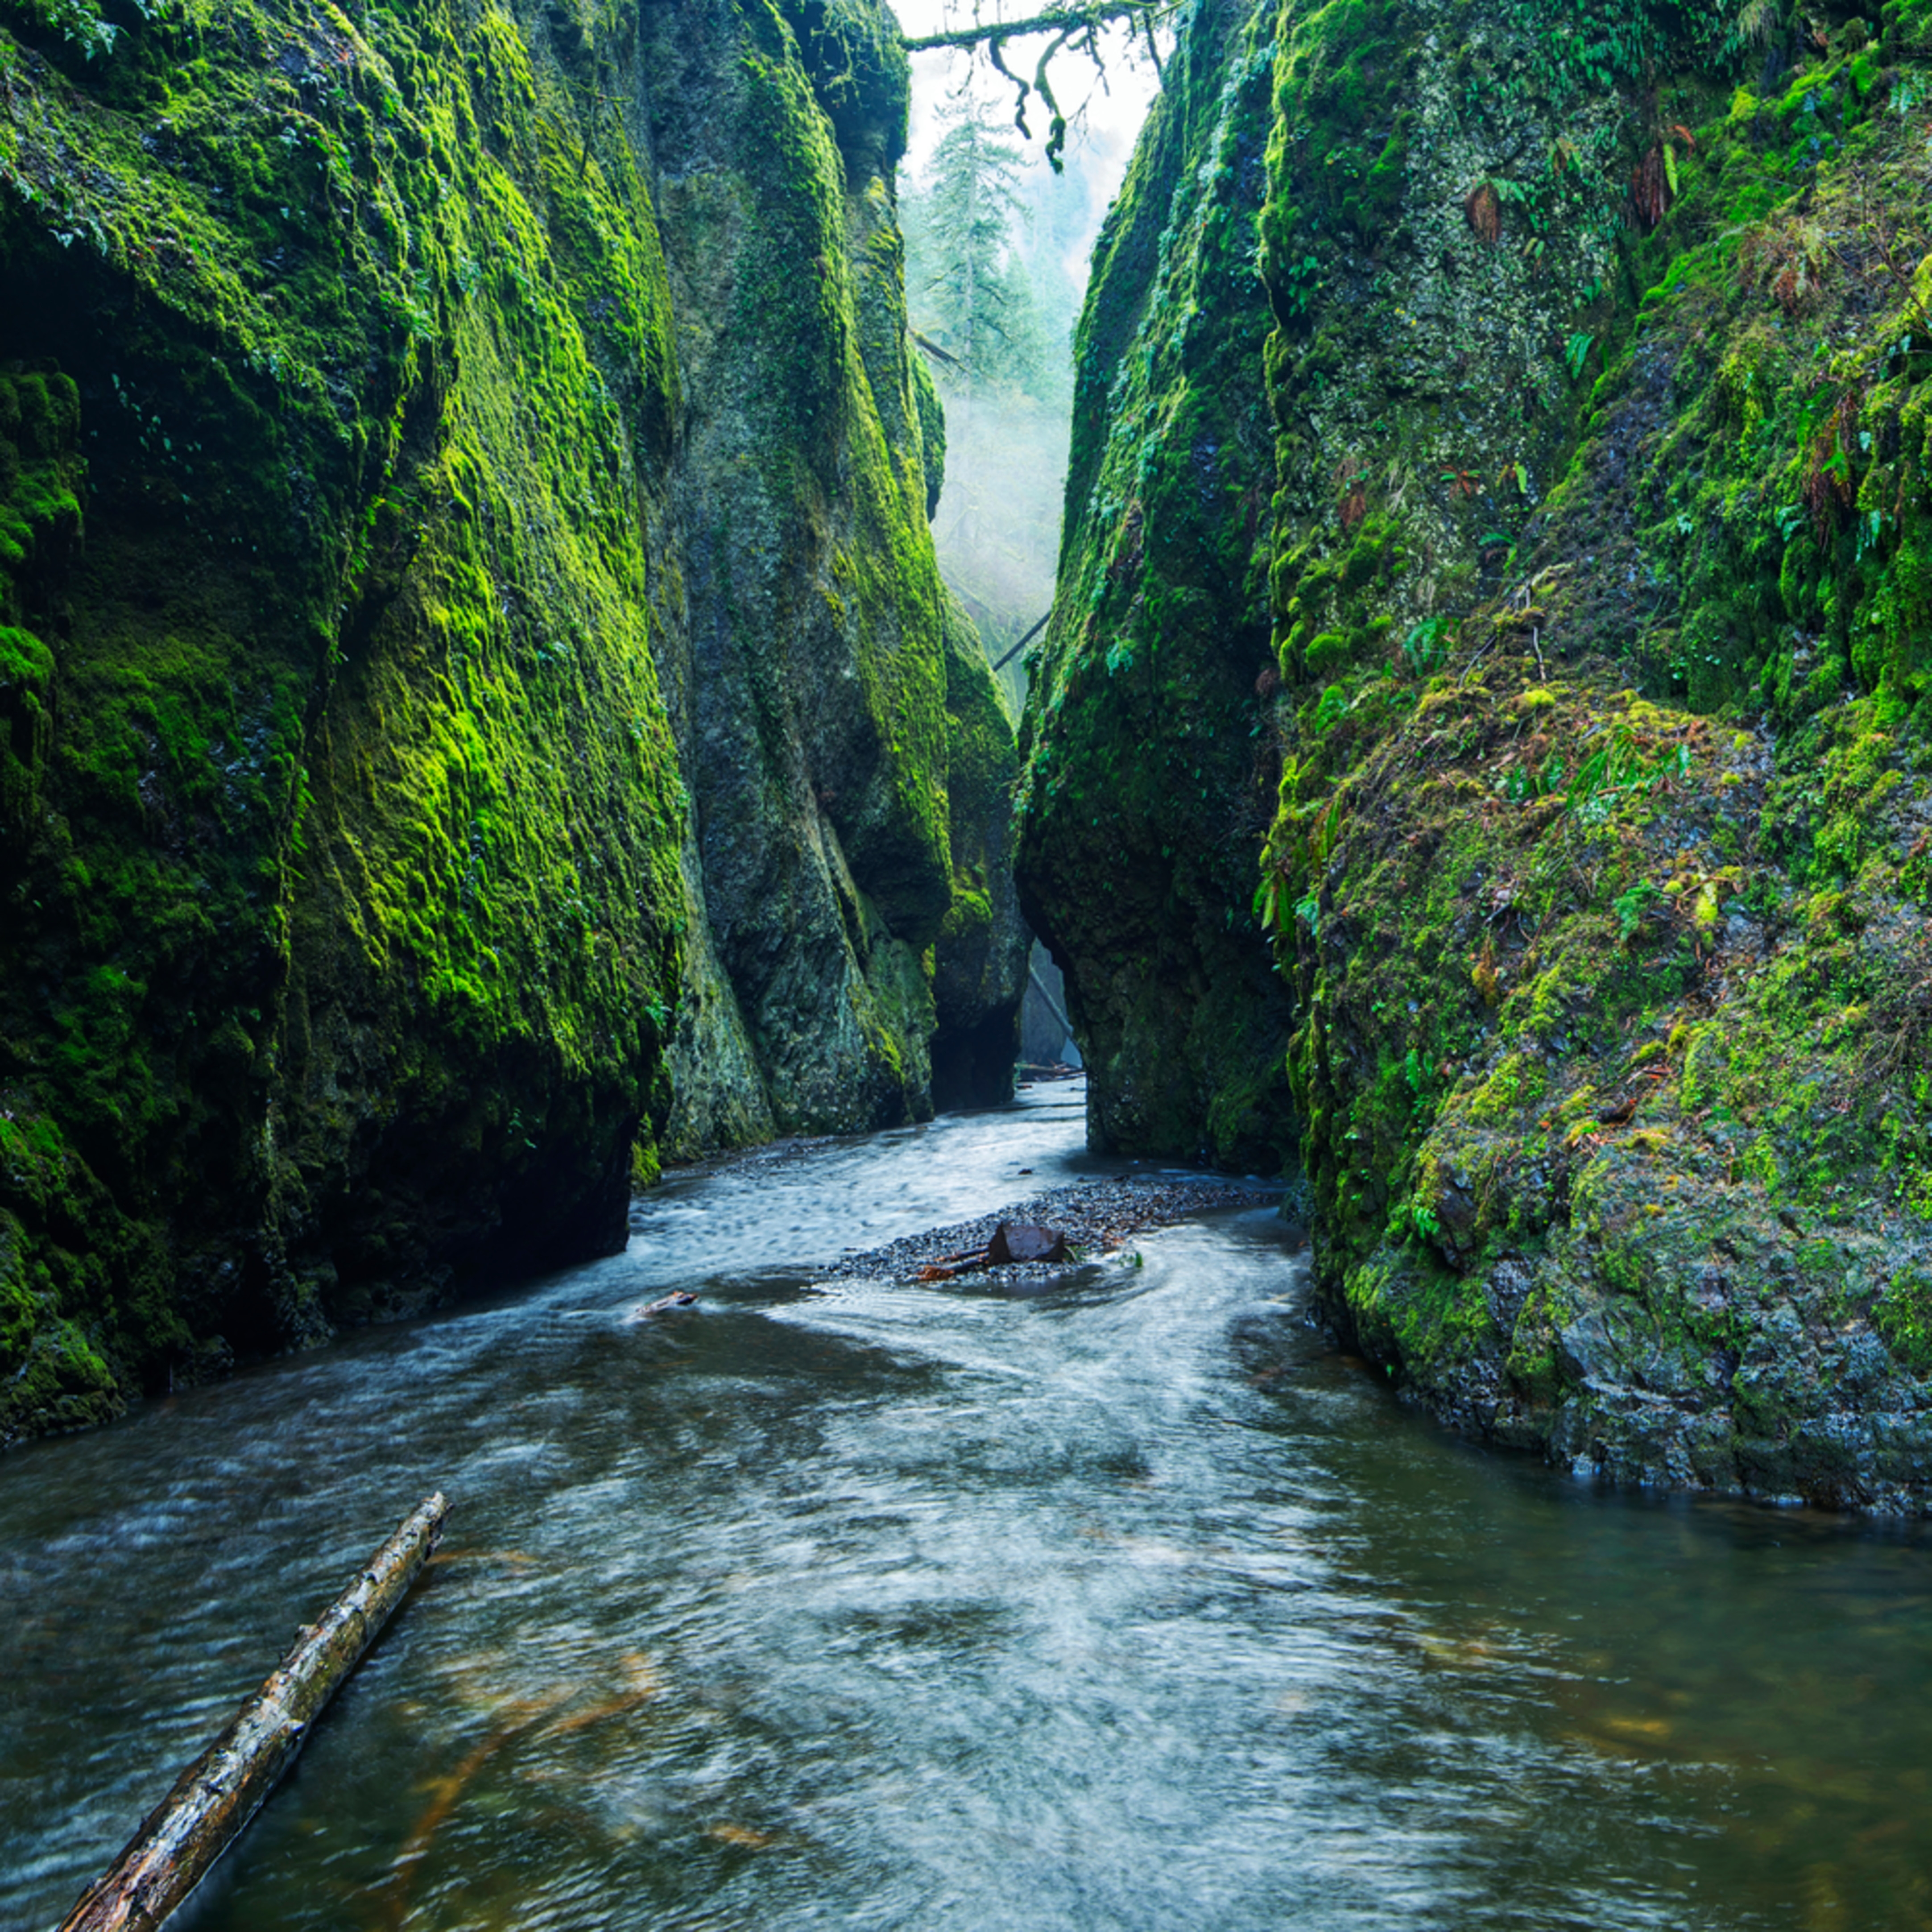 Oneonta gorge with log eyiqsa